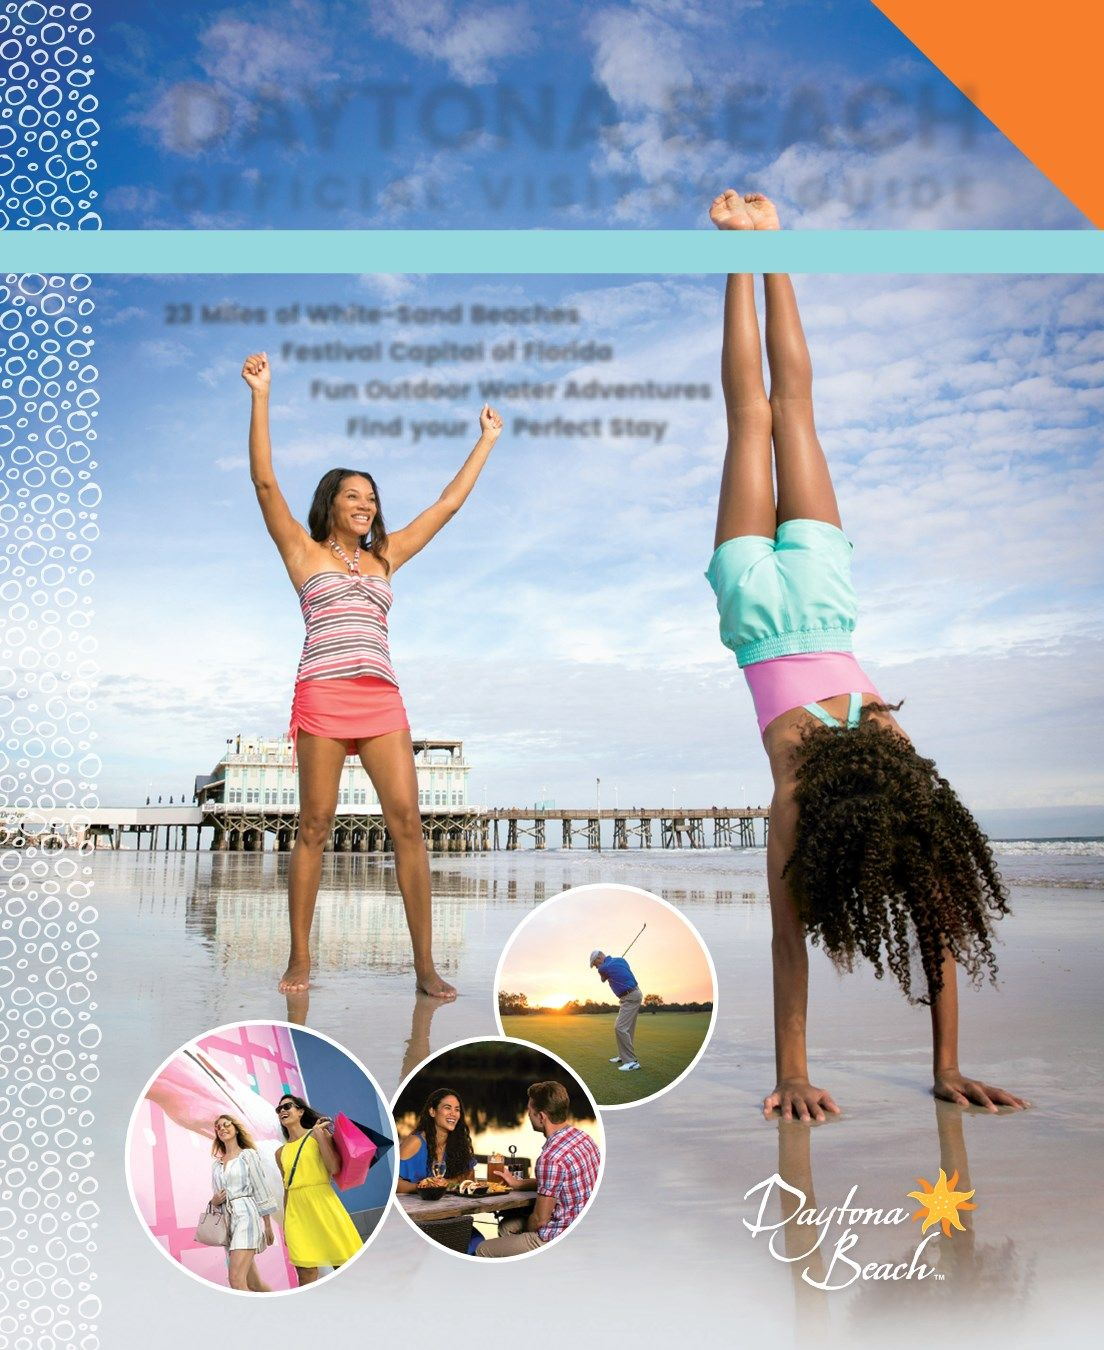 Daytona Beach Area Visitors Guide